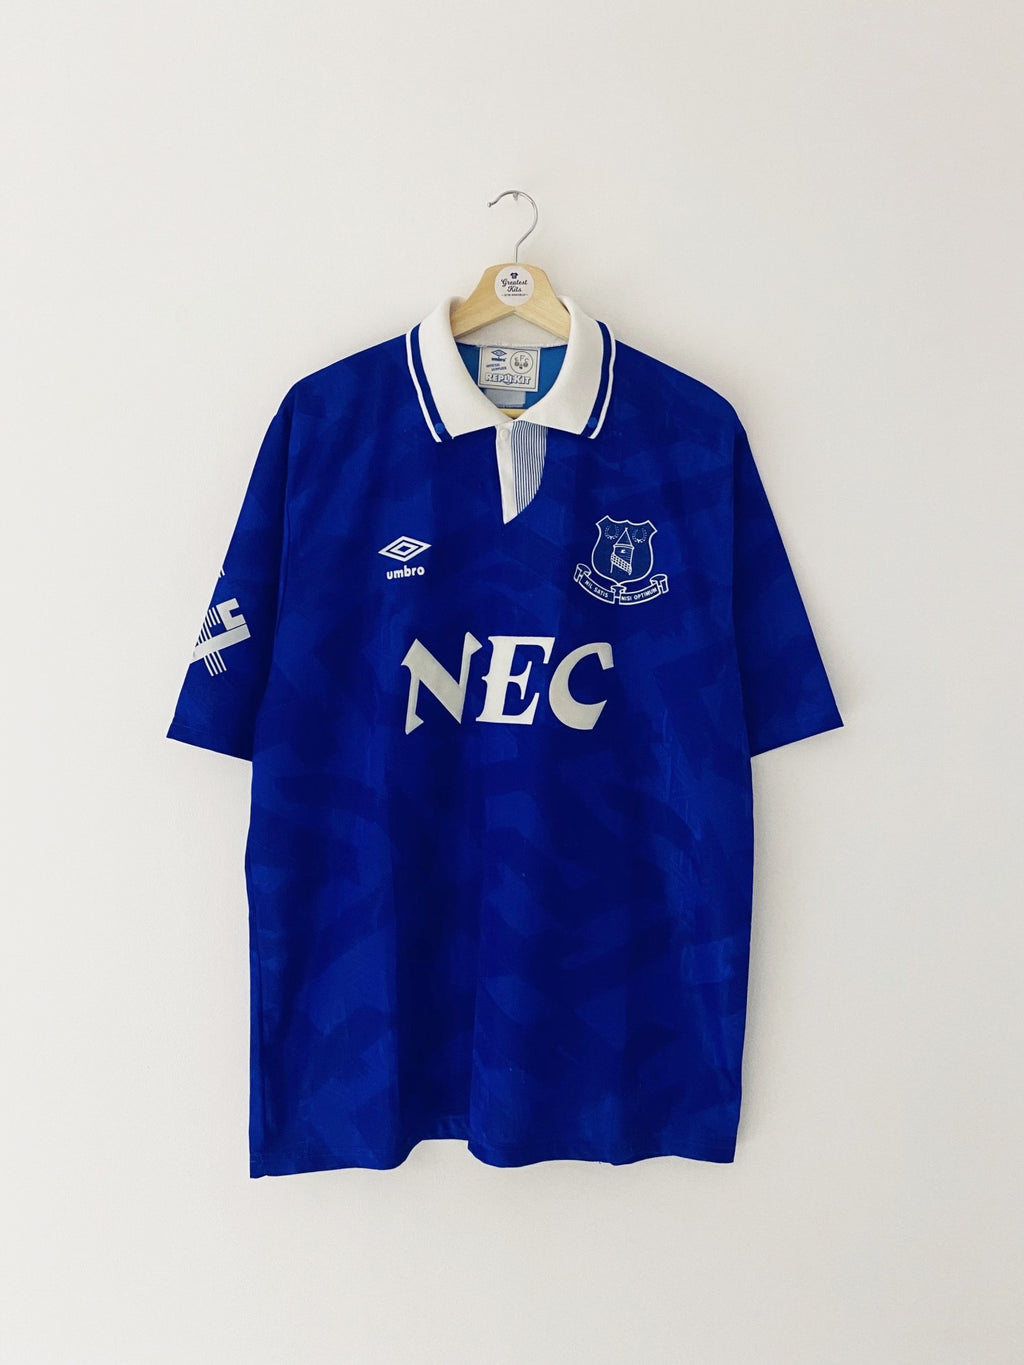 1991/93 Everton Home Shirt (XL) 8.5/10